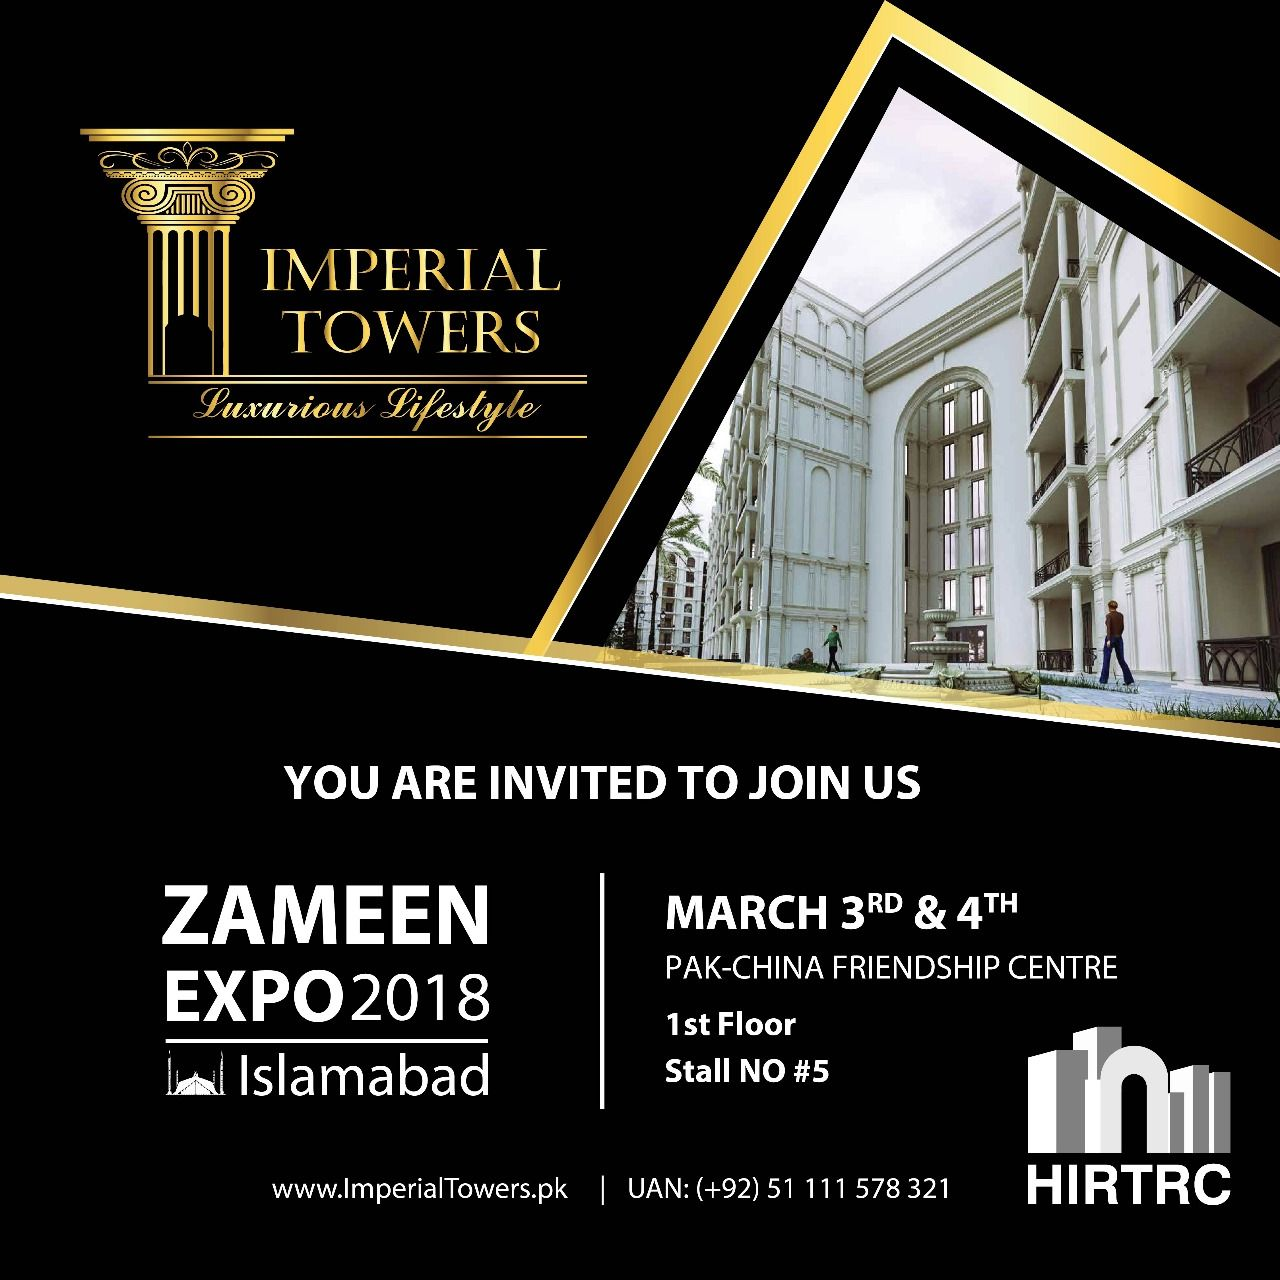 IMPERIAL TOWERS Is Participating In Zameen Expo 2018